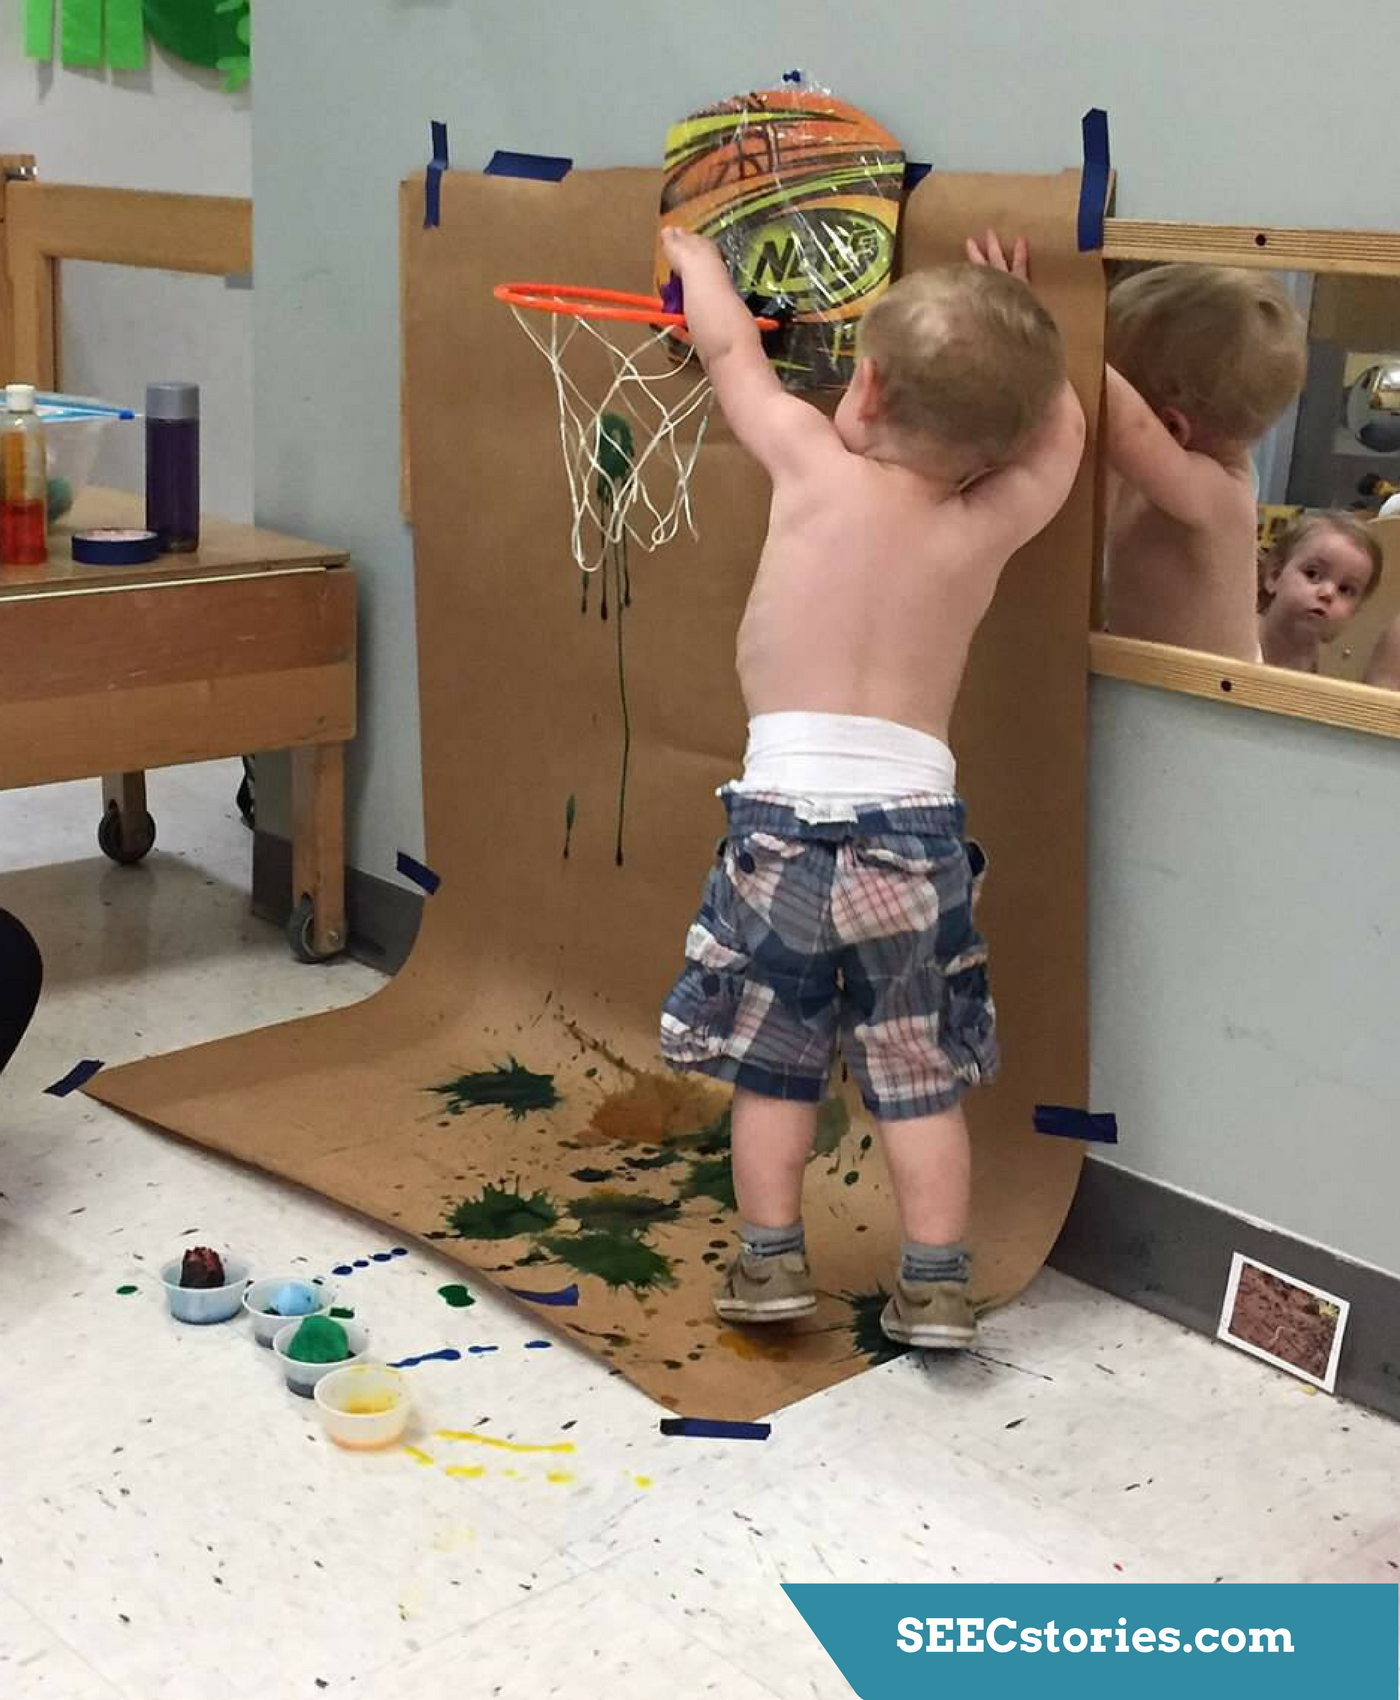 A toddler dunks a pom pom with paint on it into a little basketball hoop with butcher paper behind it. The butcher paper has paint on it.